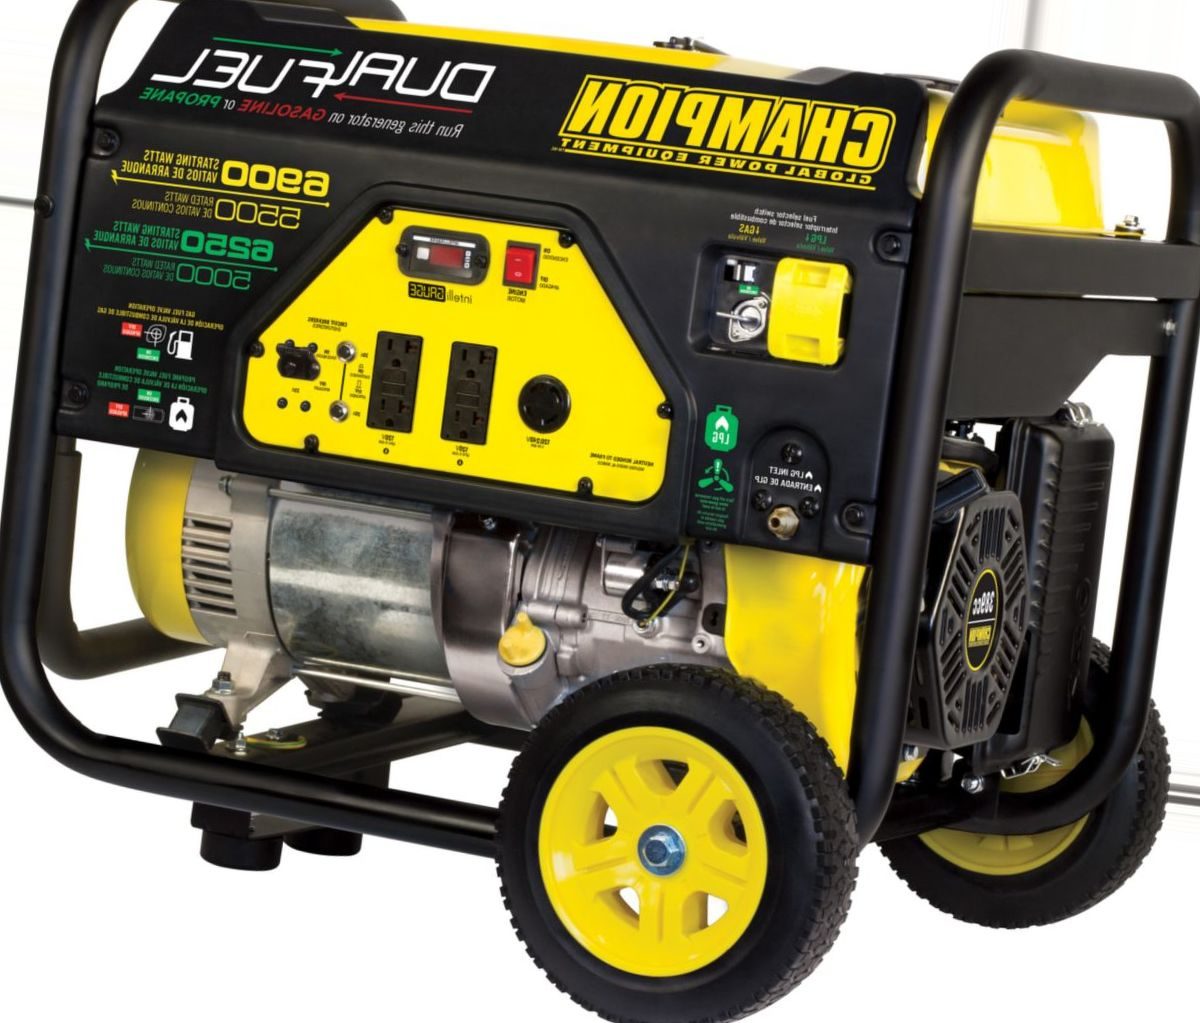 Champion Dual-Fuel Manual-Start Generator